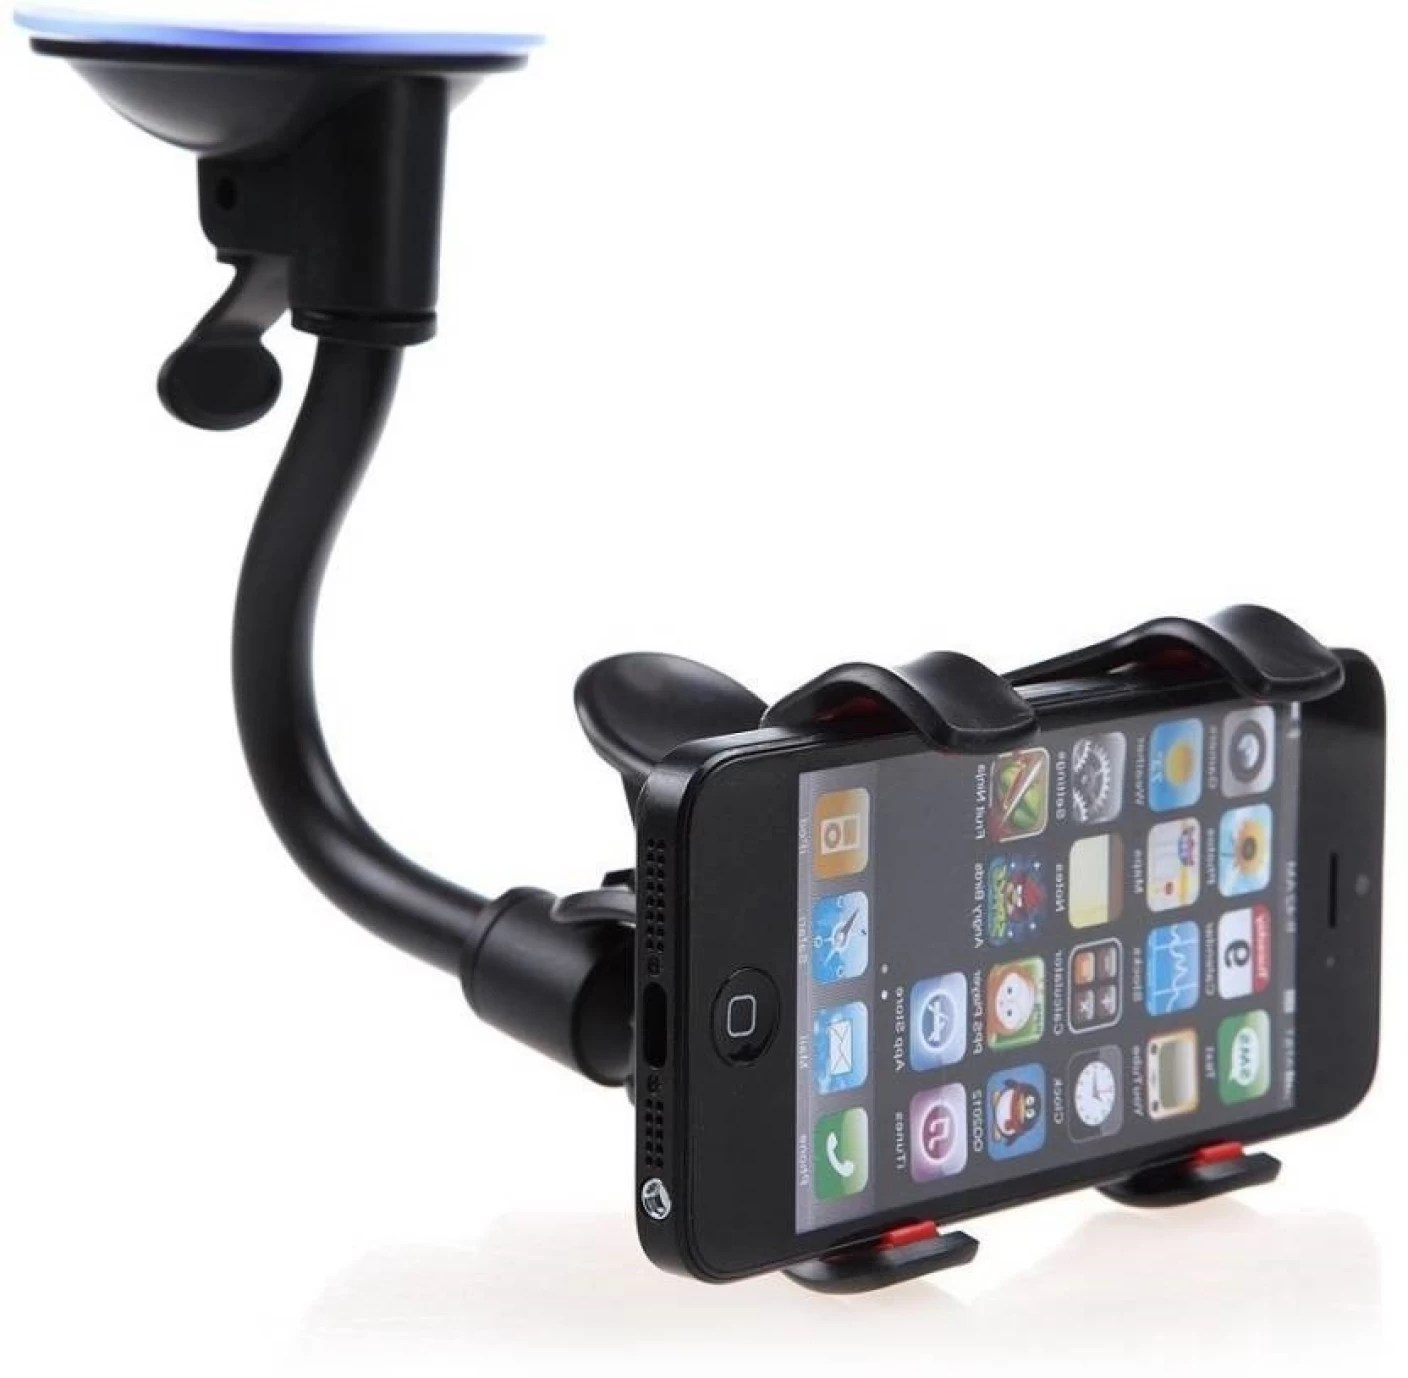 Brand New Car Mobile Holder for Windshield Price in India